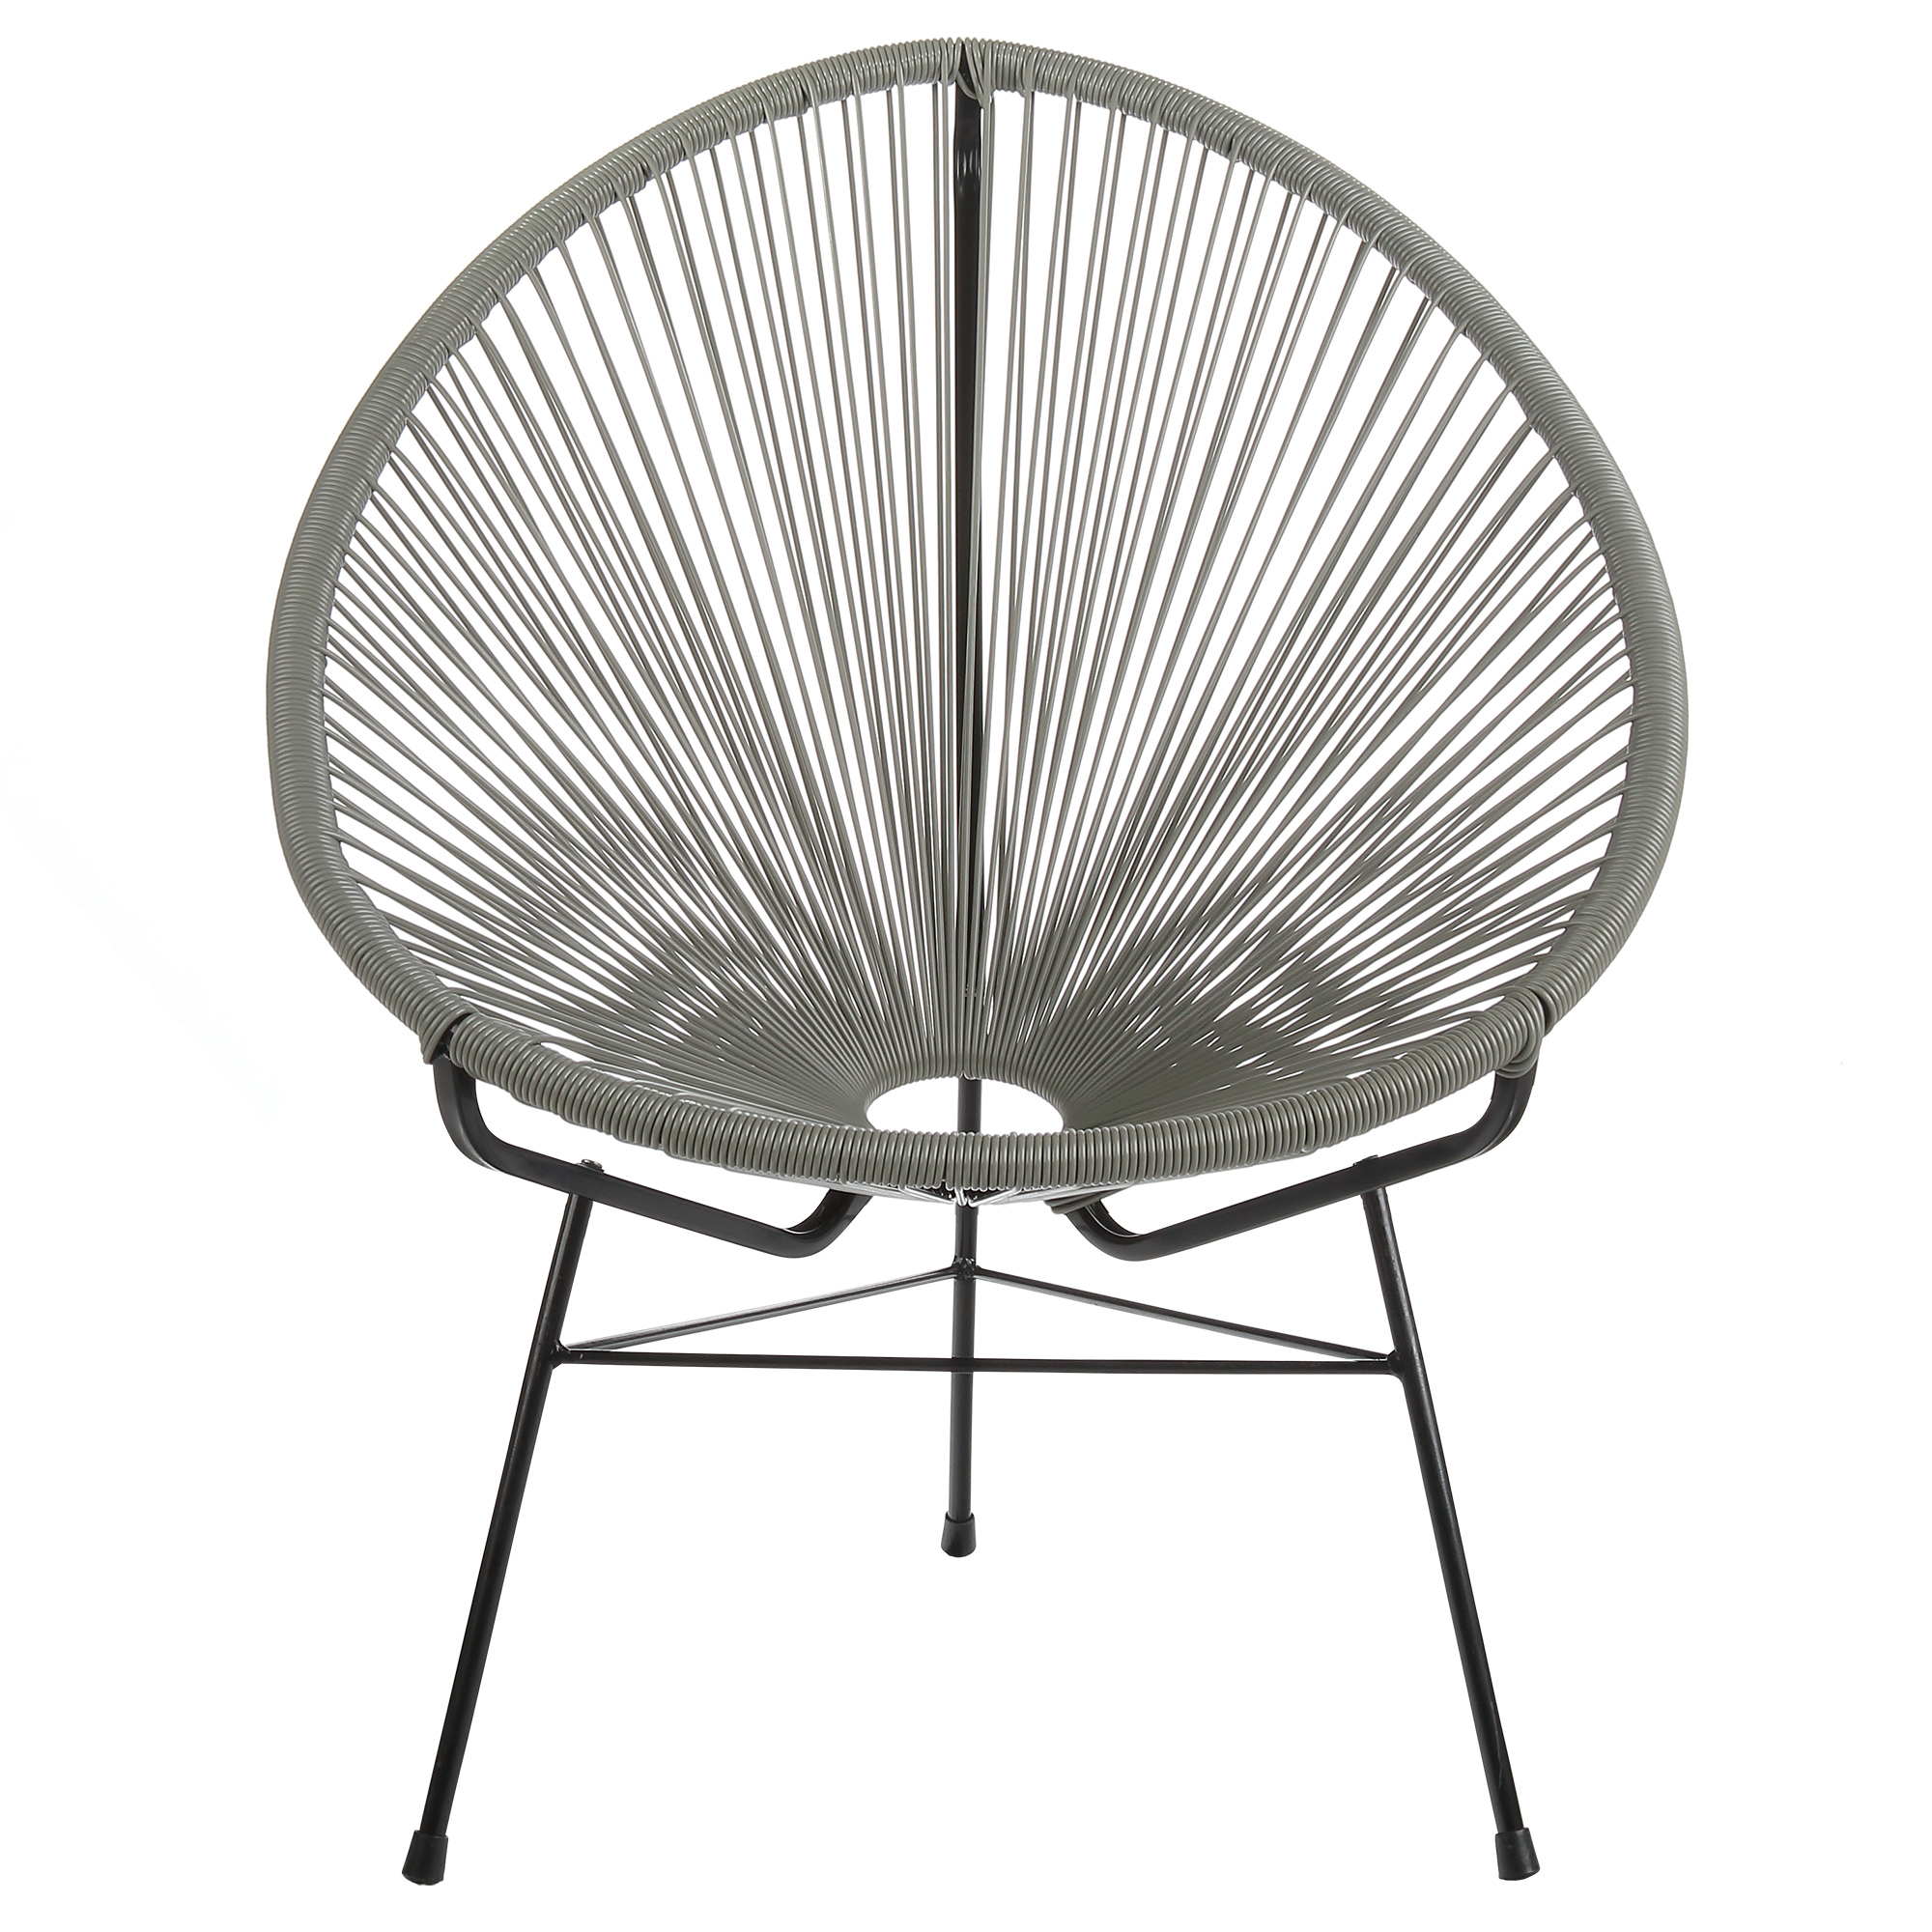 Acapulco Outdoor Lounge Chair - Grey Cord